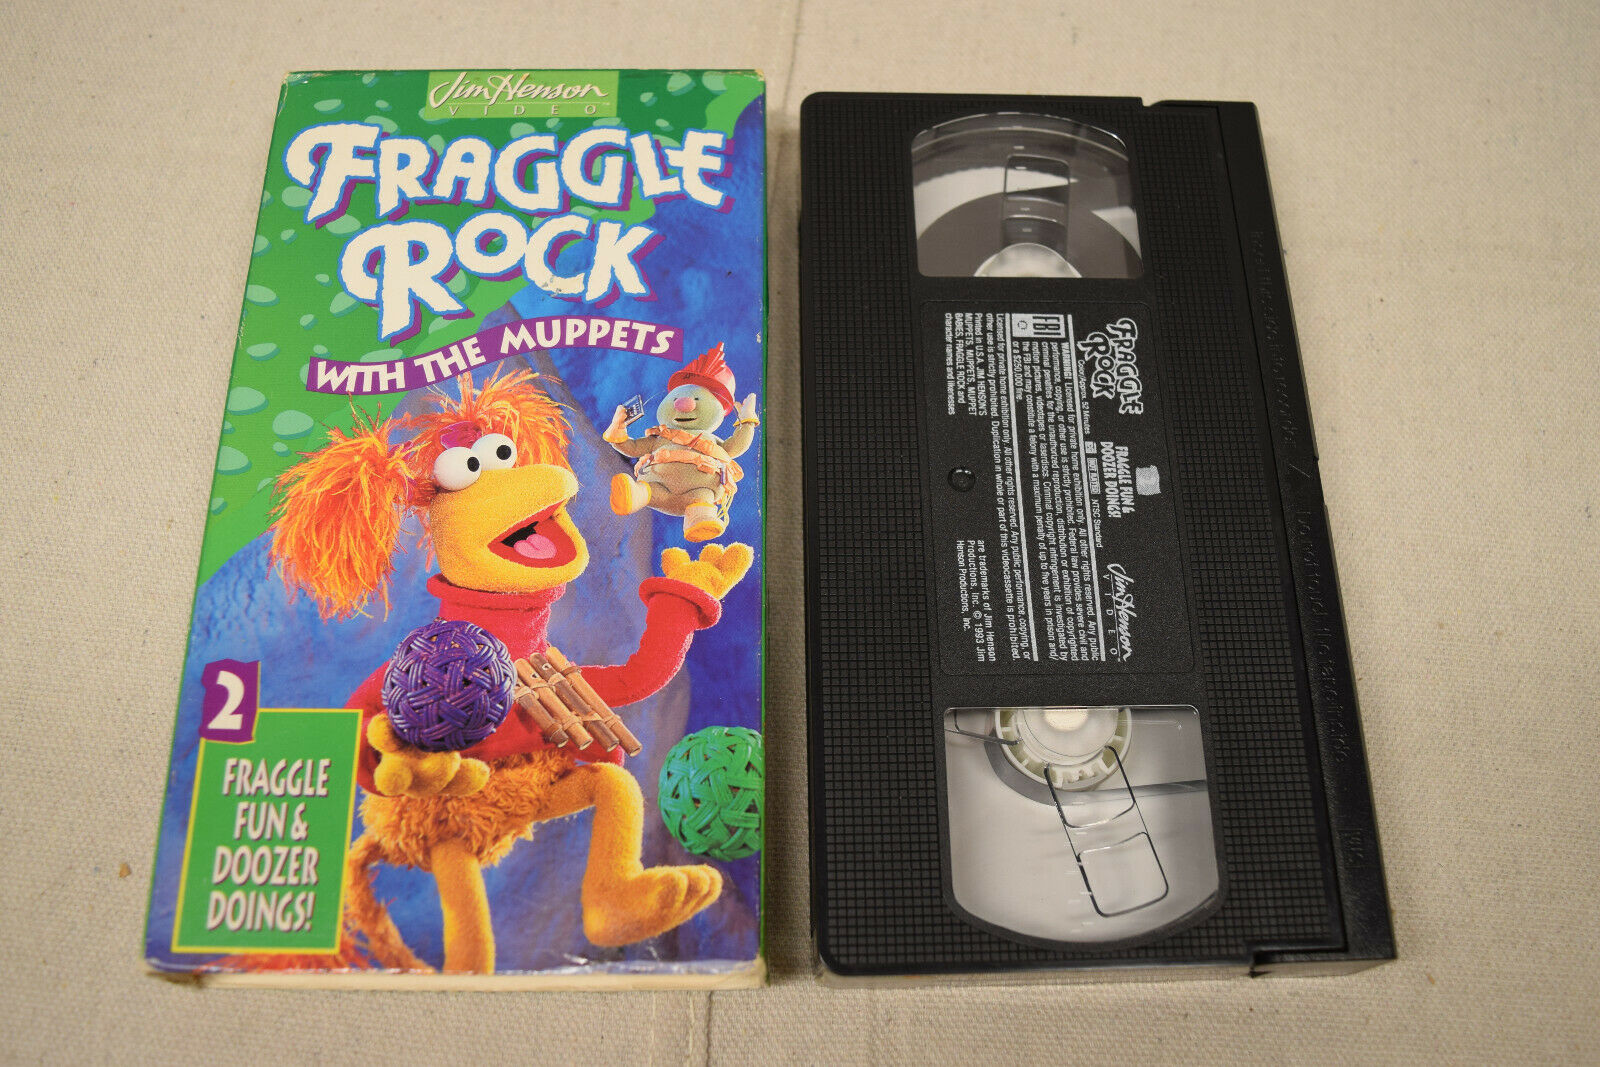 Fraggle Rock Vol. 2 Fraggle Fun and Doozer Doings (1993 VHS)